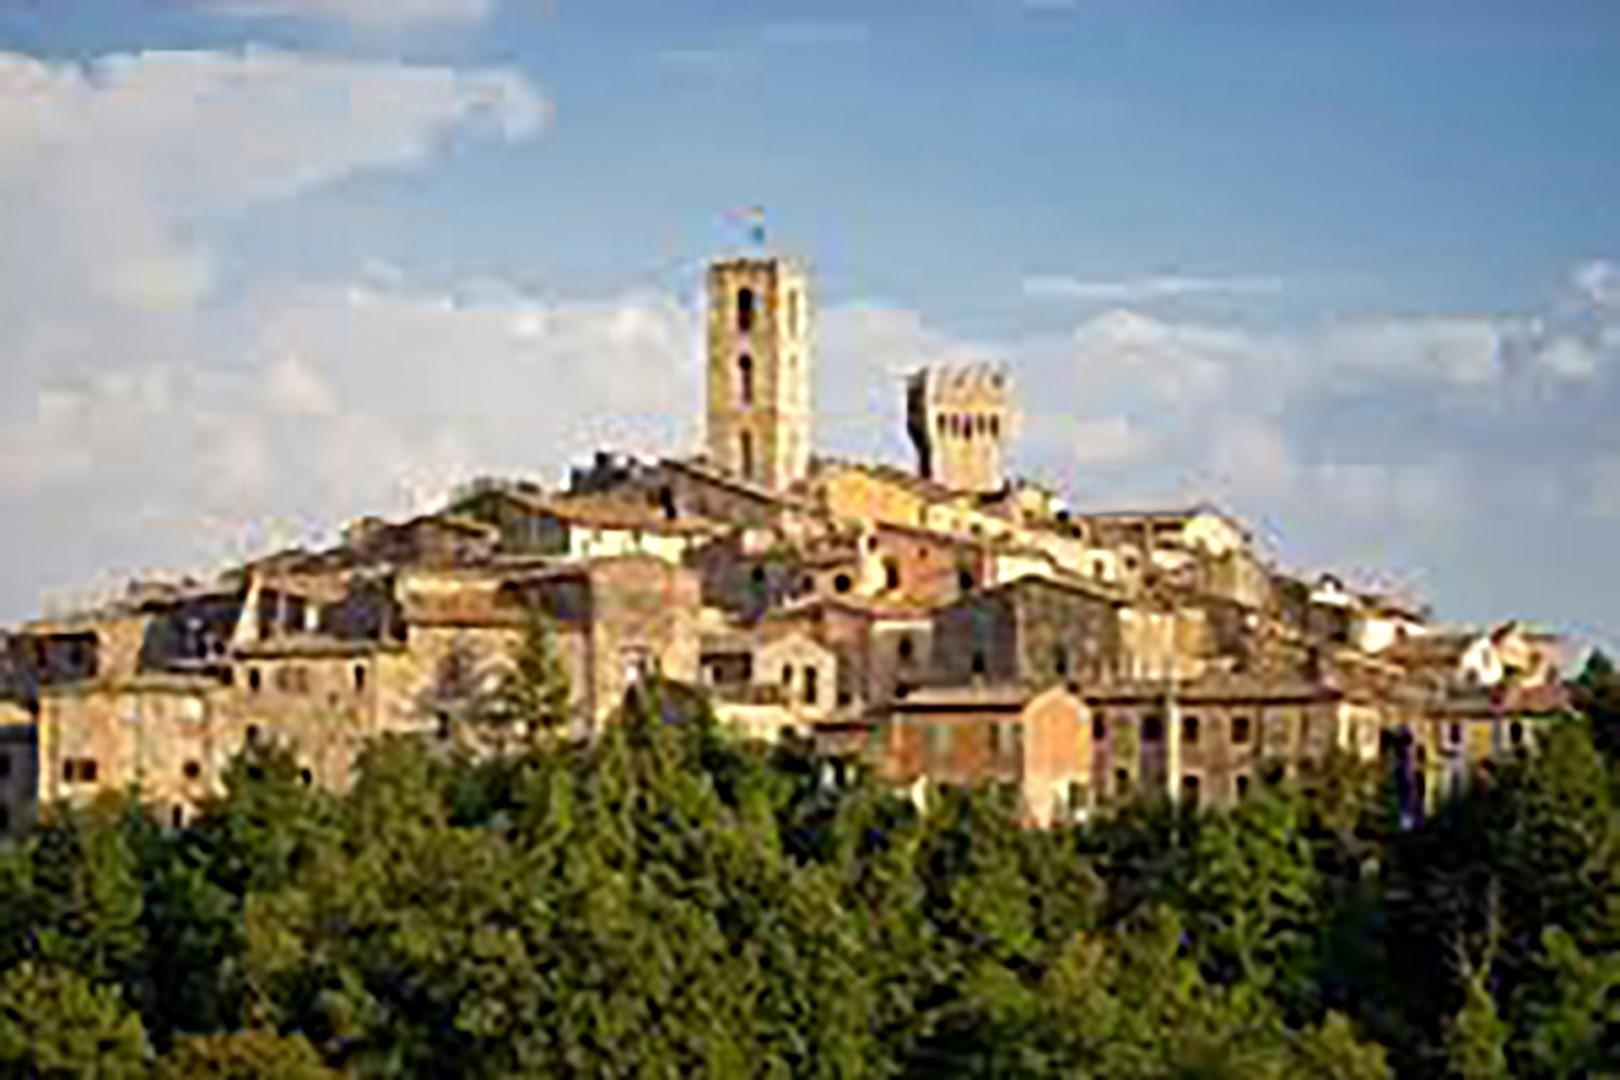 The nearest town an ancient settlement dating from at least Roman times, San Casciano Val di Pesa.